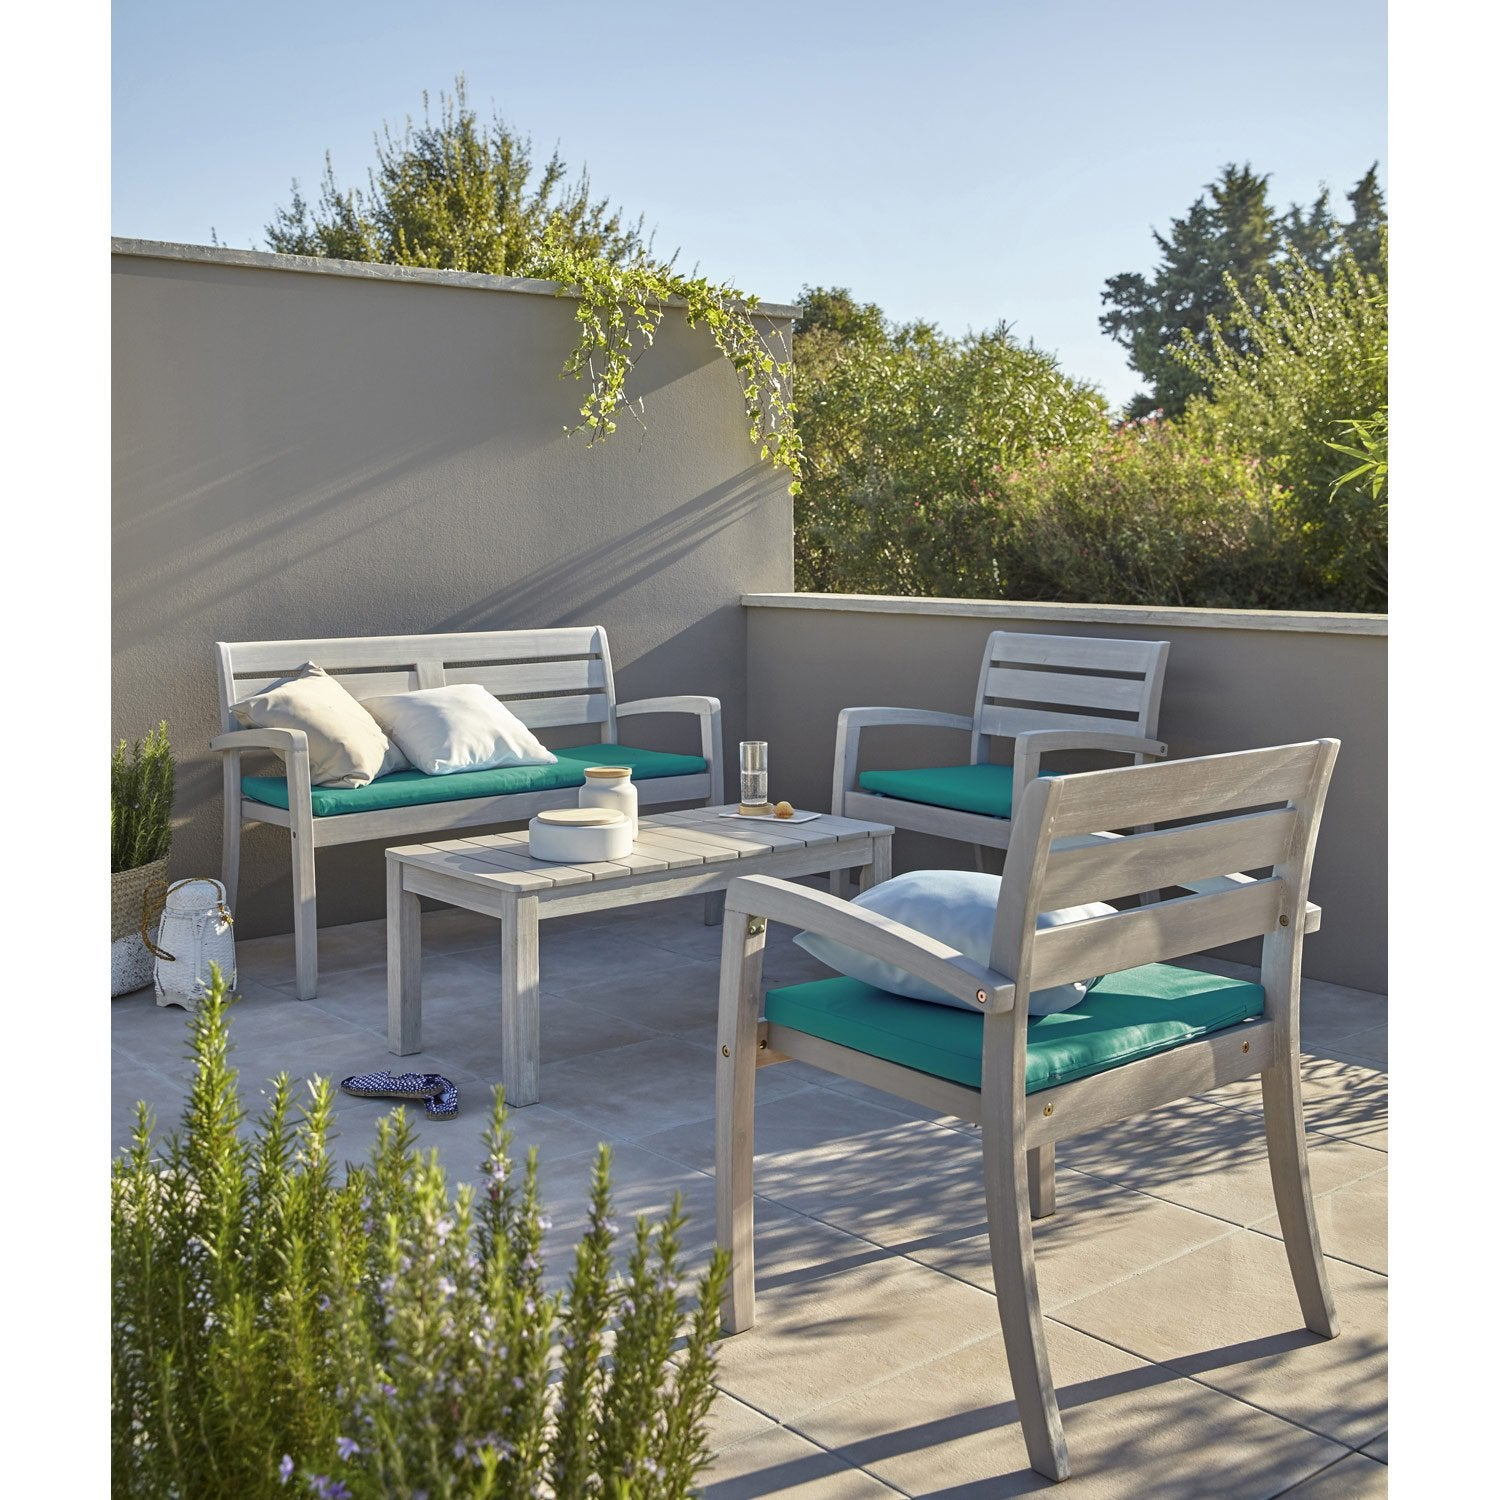 Salon de jardin portofino bois naturel 1 table 2 for Salon de jardin leroy merlin